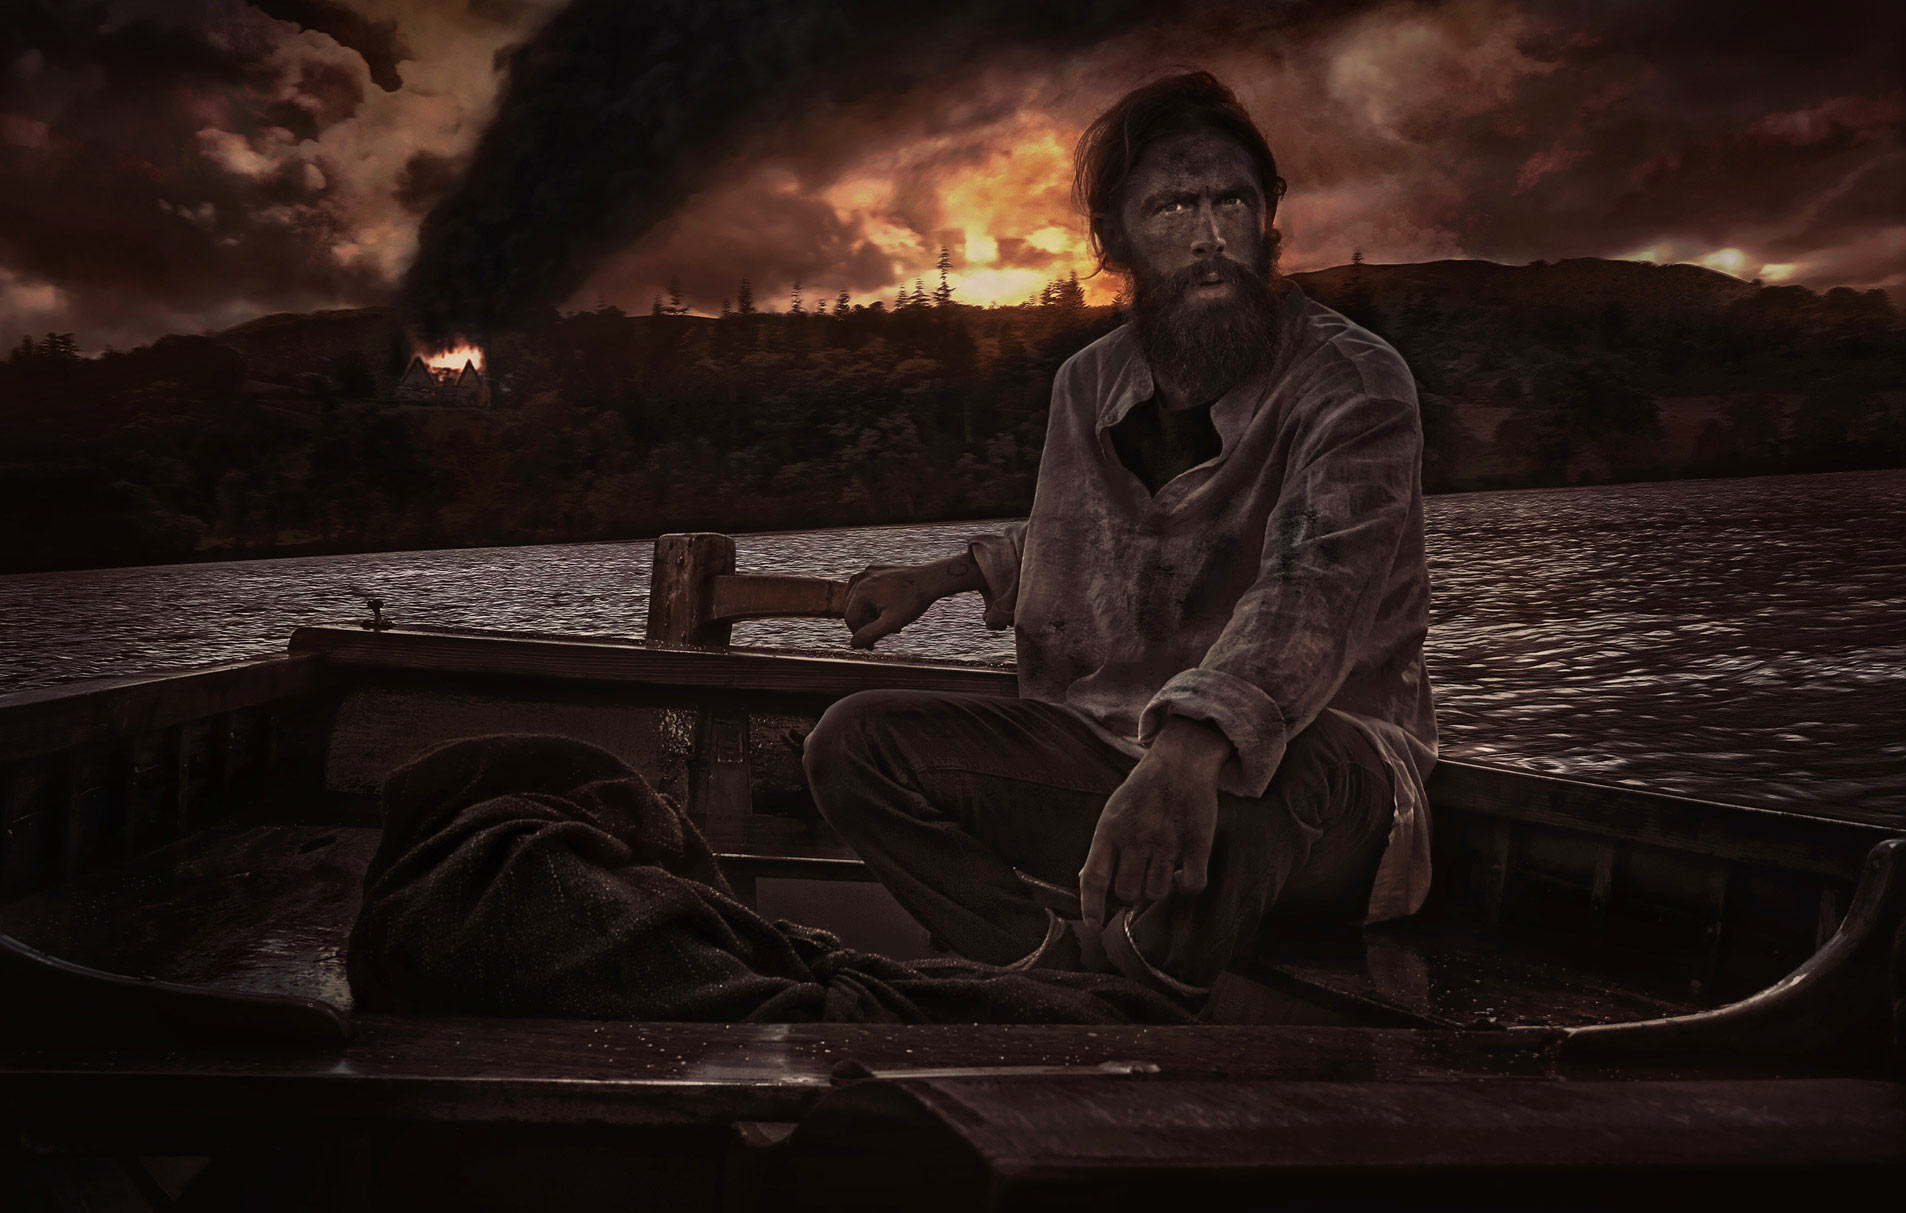 Bearded Man escapes in a boat at night. Burning building in the background.